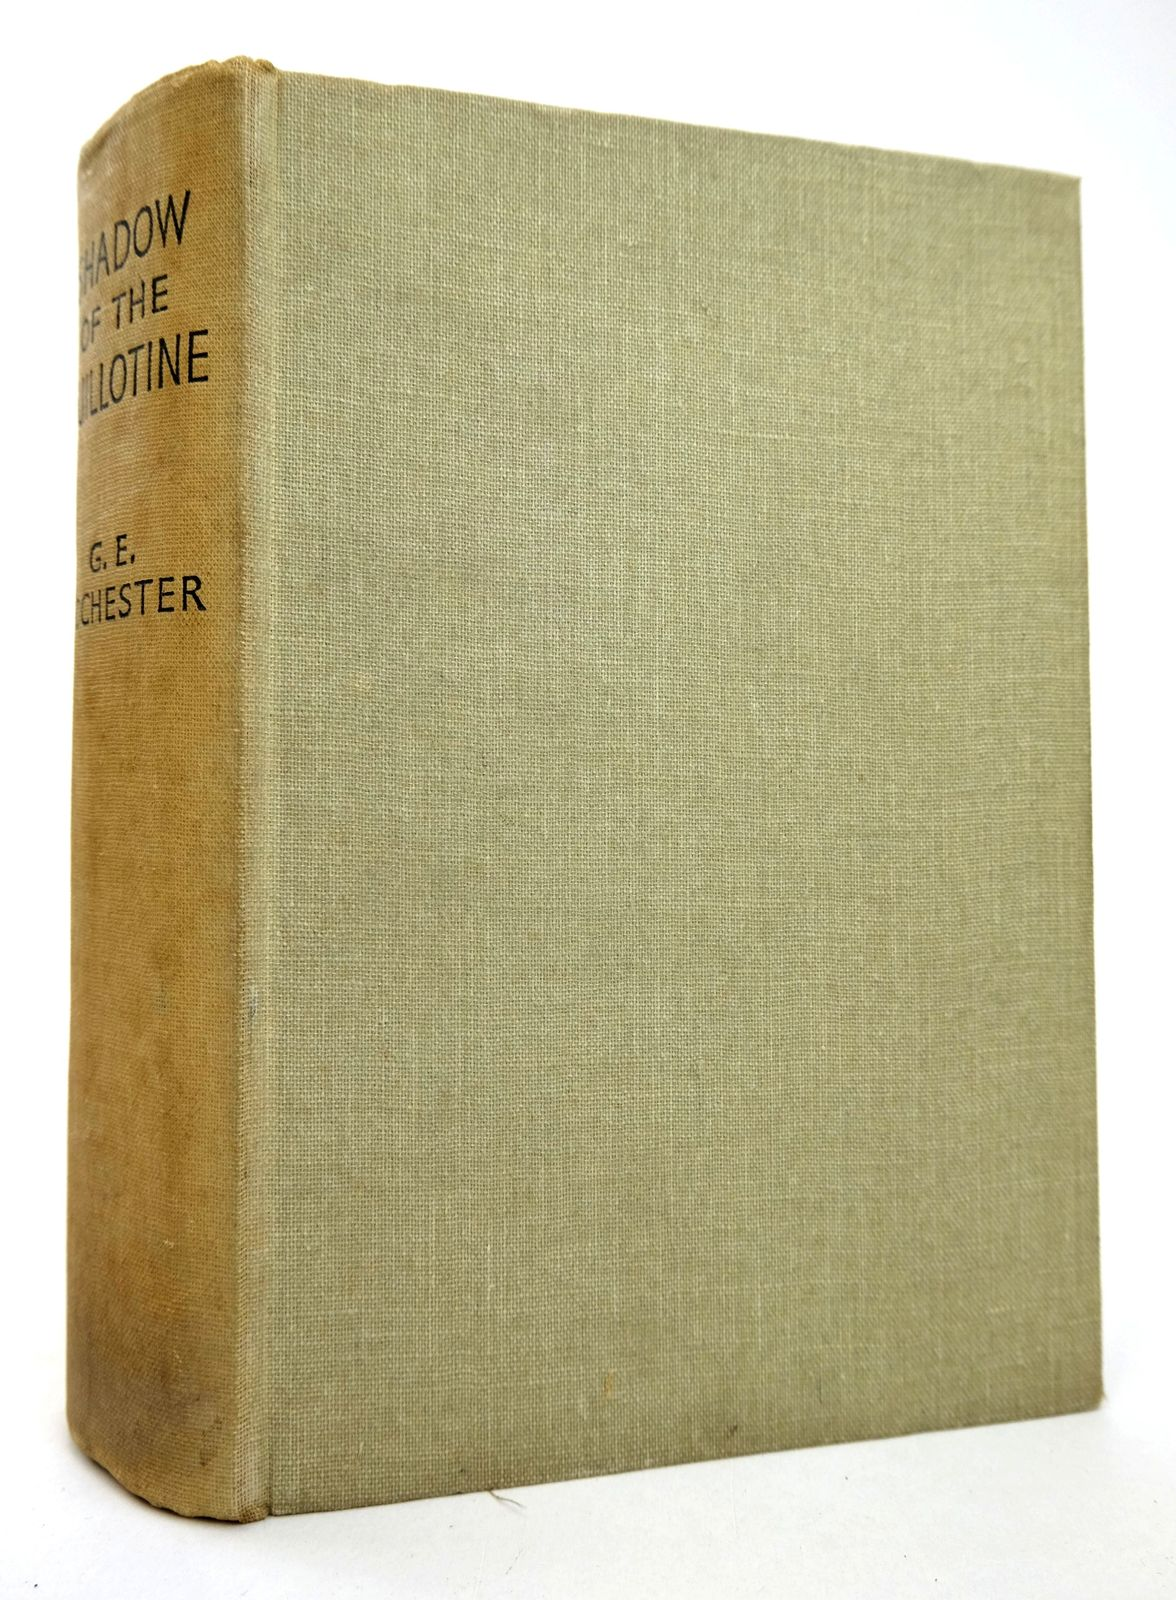 Photo of THE SHADOW OF THE GUILLOTINE written by Rochester, George E. published by Popular Library (STOCK CODE: 1818794)  for sale by Stella & Rose's Books